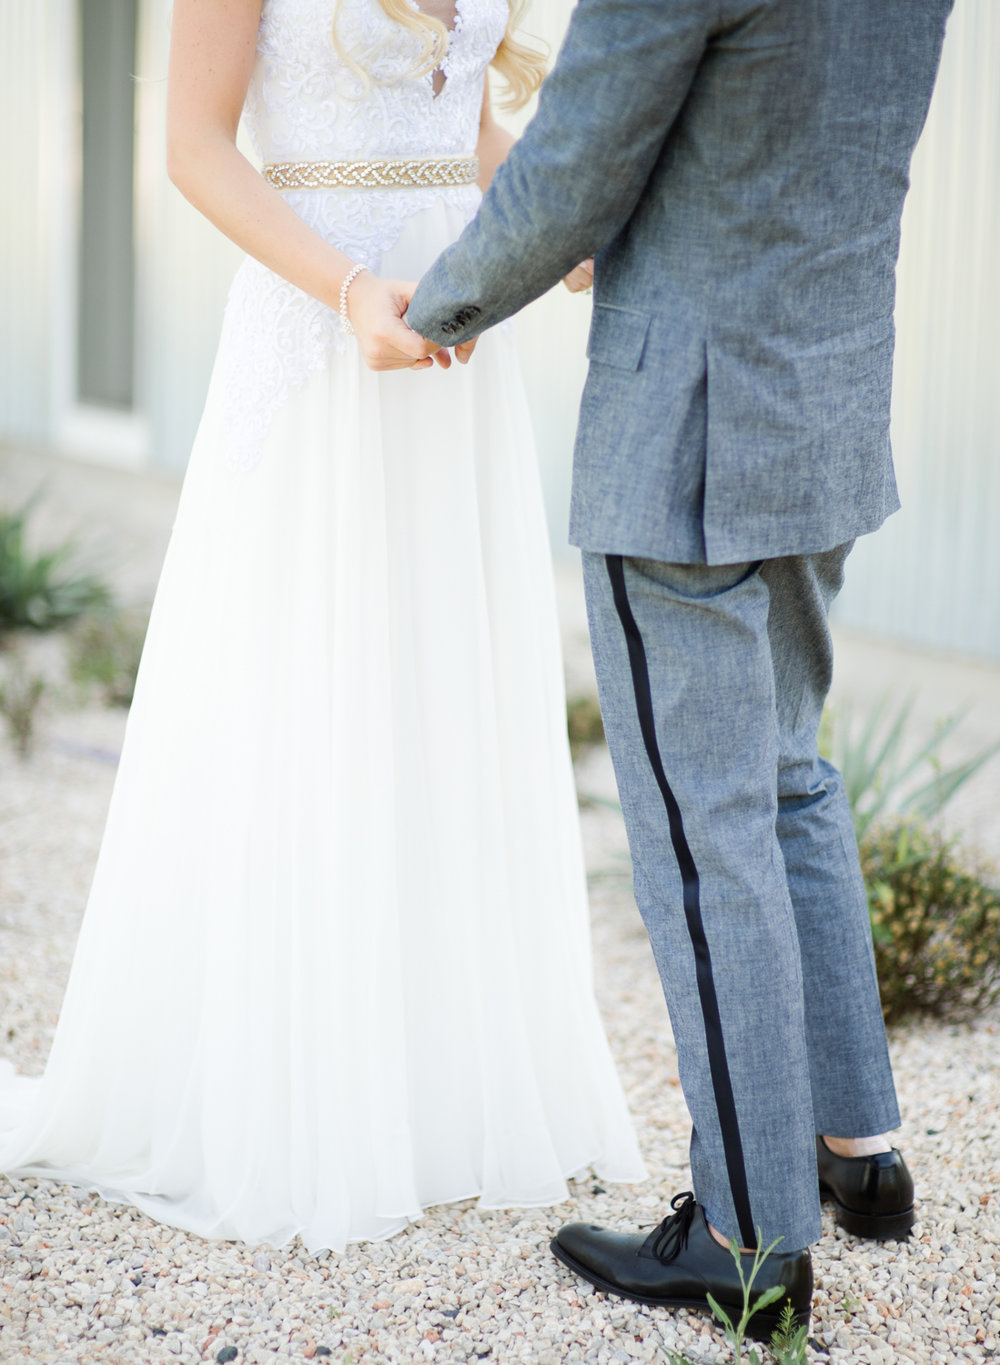 PROSPECT_HOUSE_WEDDING_AUSTIN_TX_BY_MATTHEW_MOORE_PHOTOGRAPHY_00097.jpg